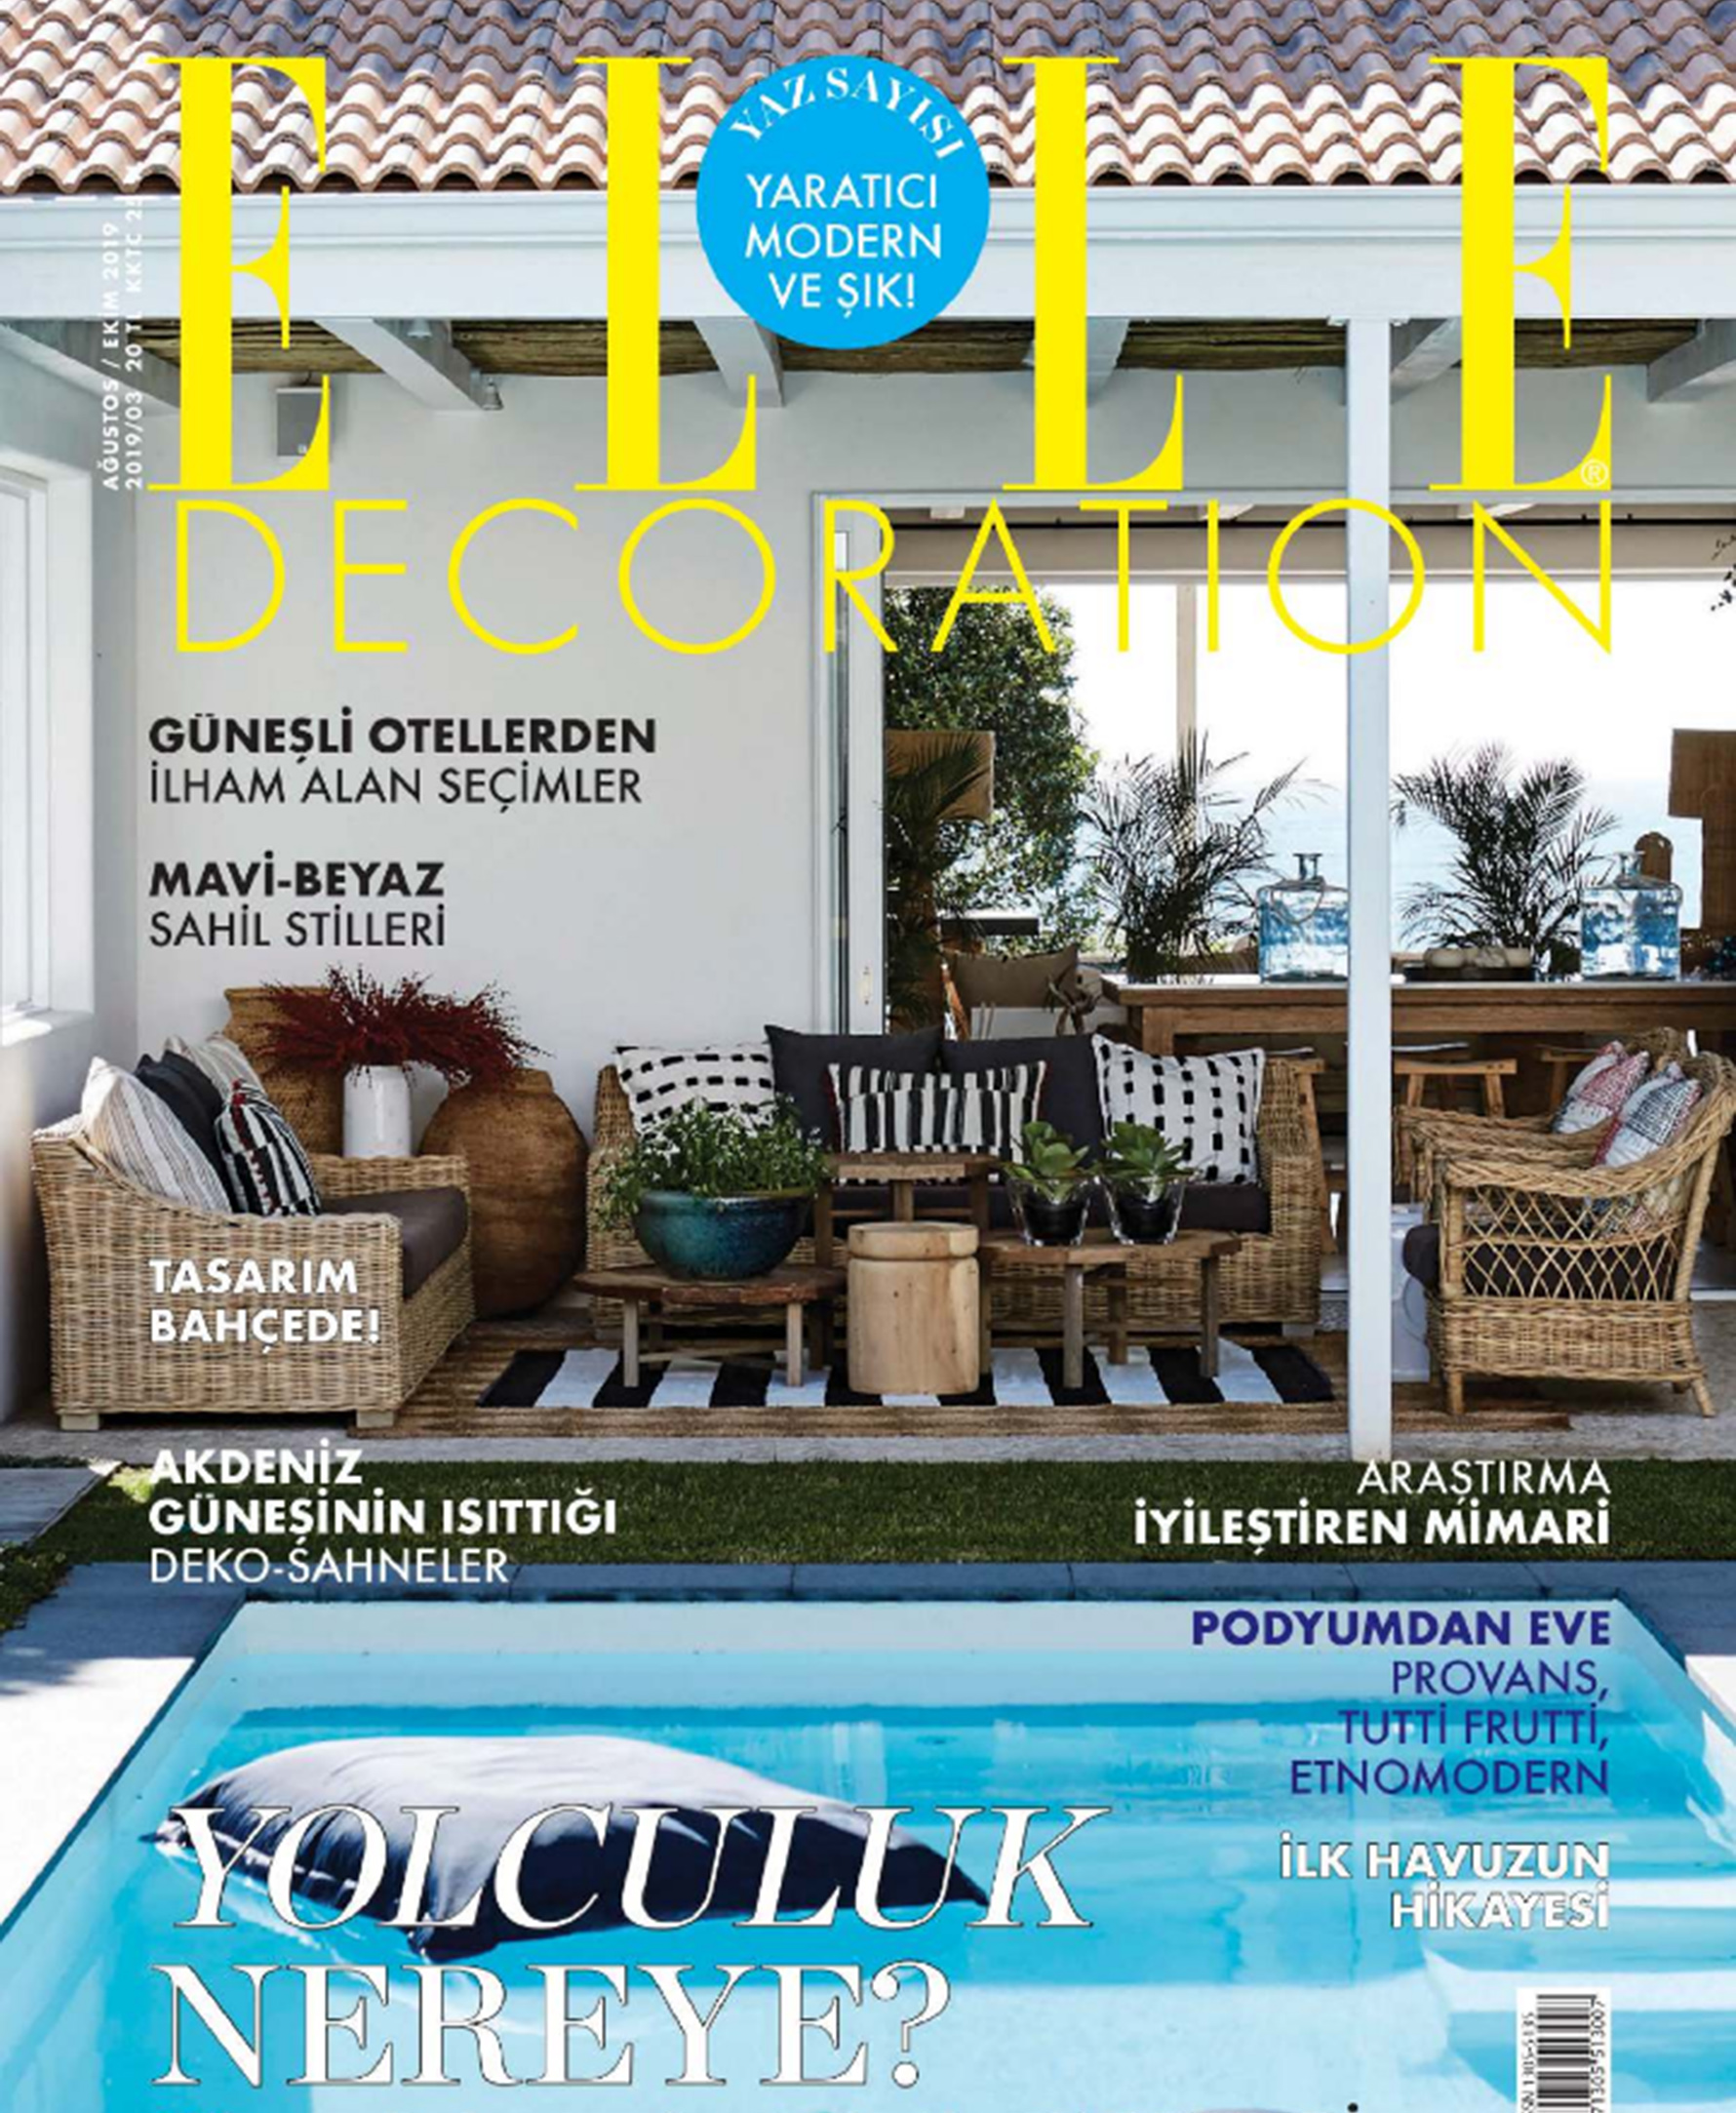 Elle Decoartion 19 Aug-Oct